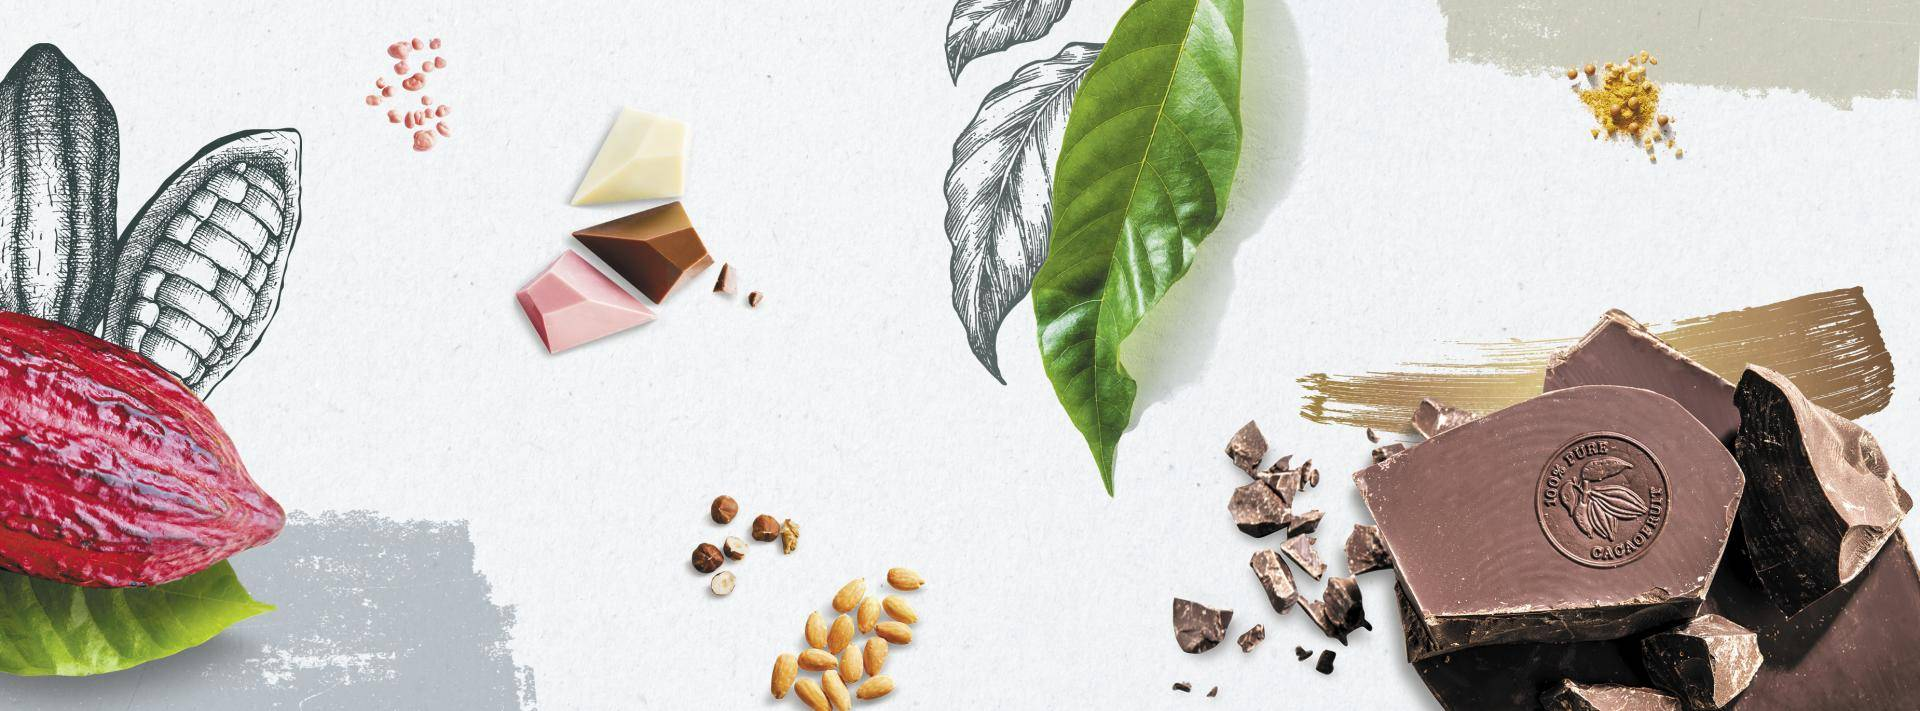 Barry Callebaut Group Half-Year Results 2019/20 - Strong volume growth and profitability